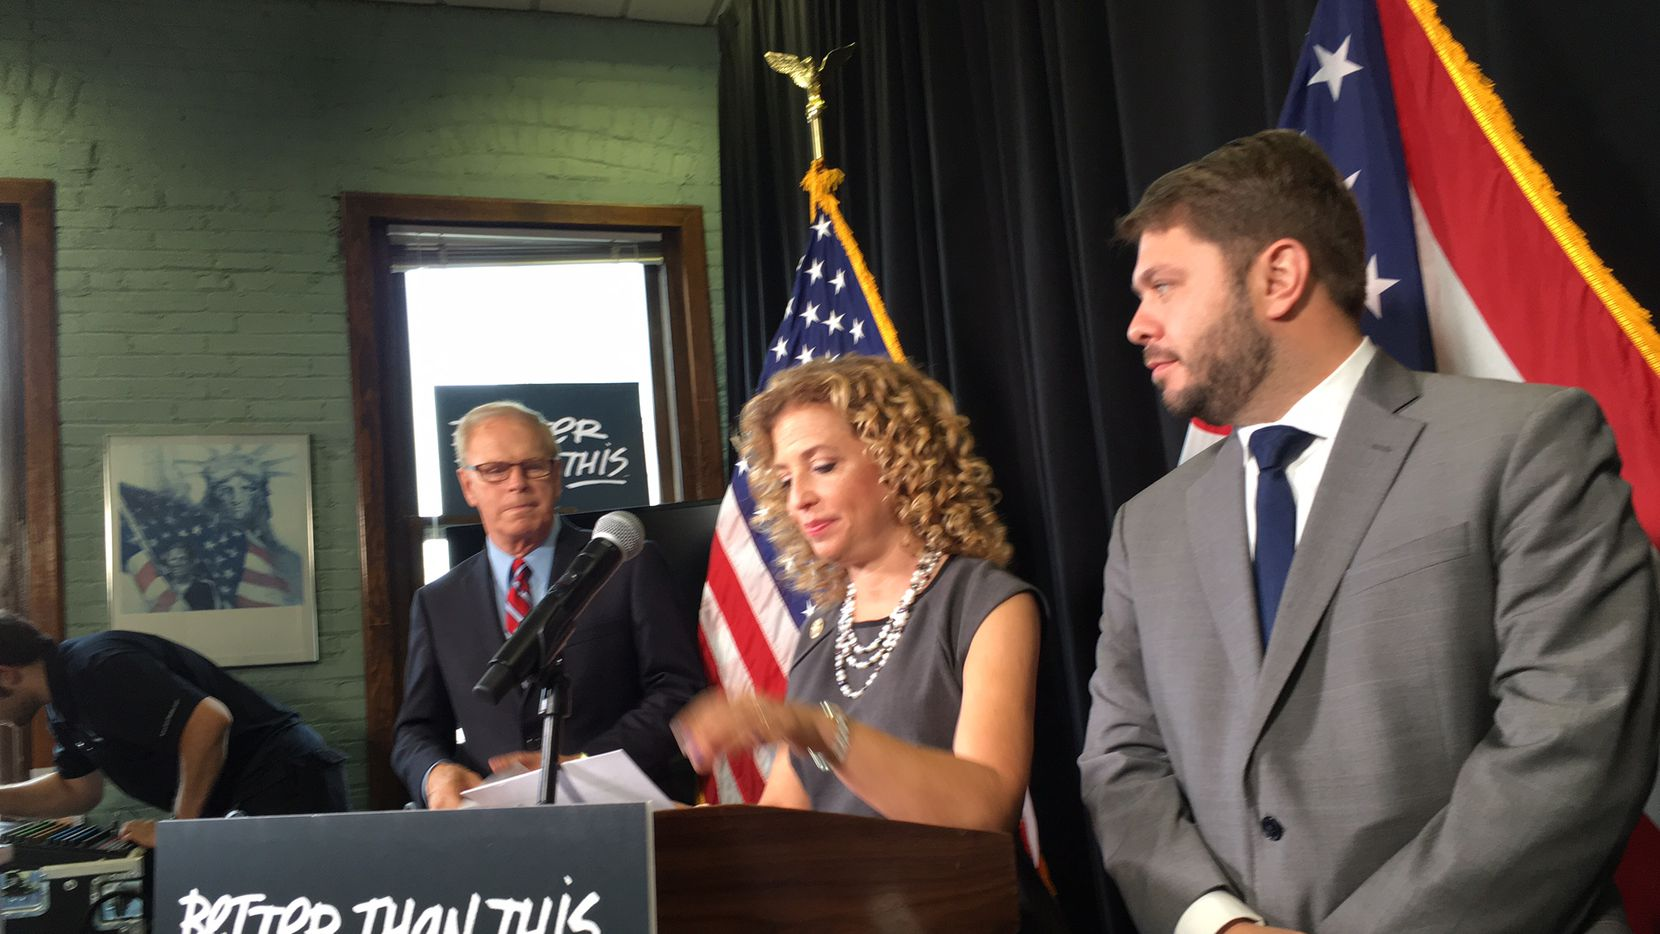 Democratic National Committee Chairwoman Debbie Wasserman Schultz (center)  bashes Donald Trump at a news conference near the Republican National Convention in Cleveland. She is joined by former Ohio Gov. Ted Strickland (left) and Rep. Ruben Gallego of Arizona.